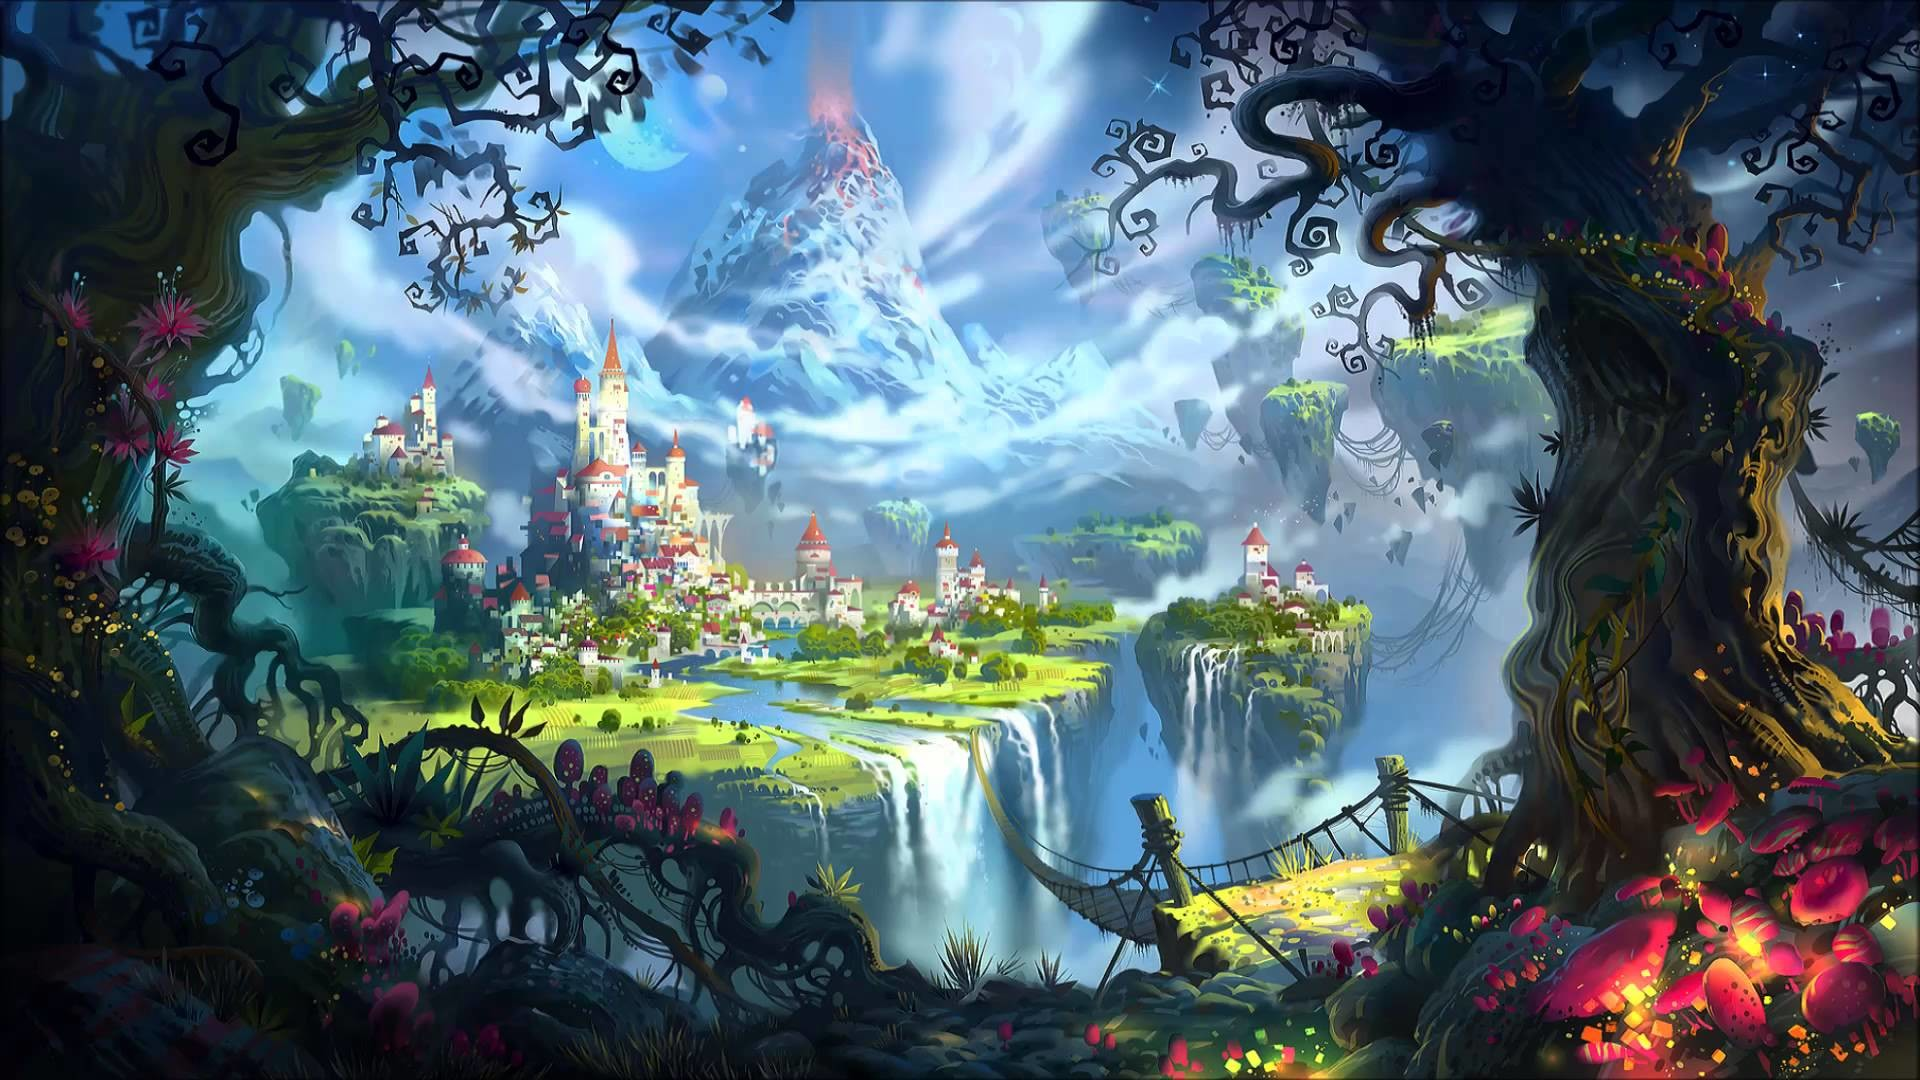 Christmas Magic Hd Wallpapers: Fairytale Background (55+ Images